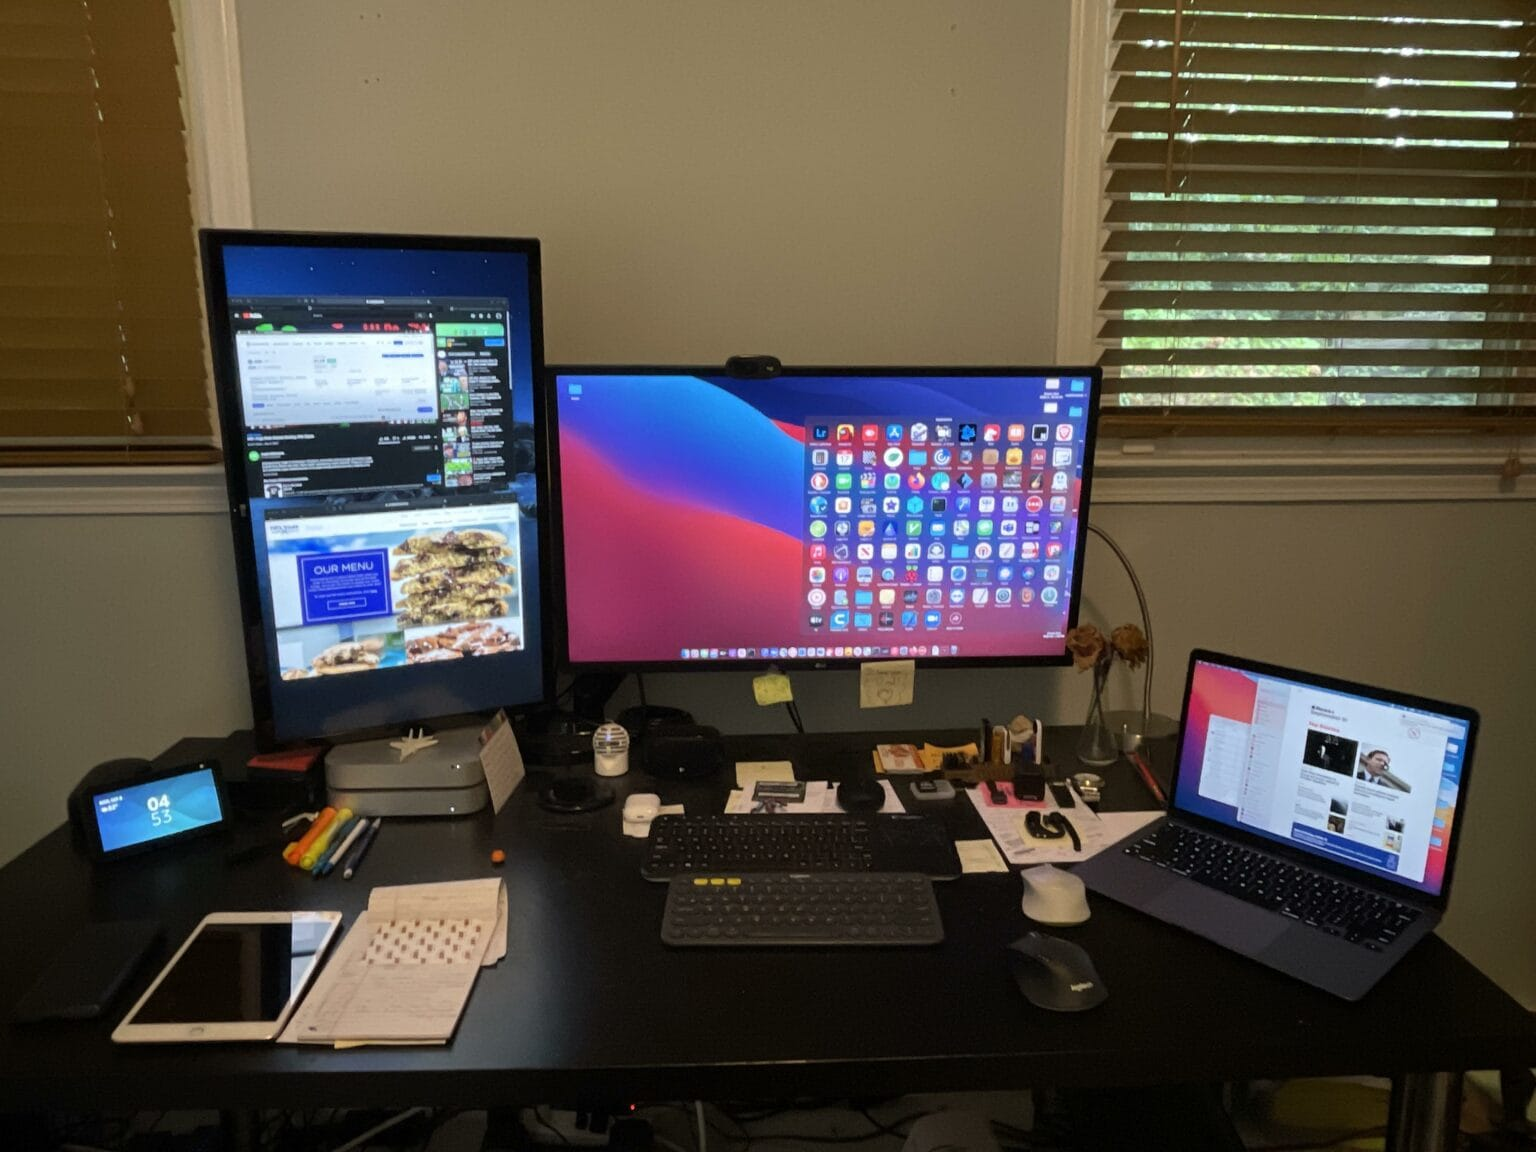 How would you manage so many devices and screens?